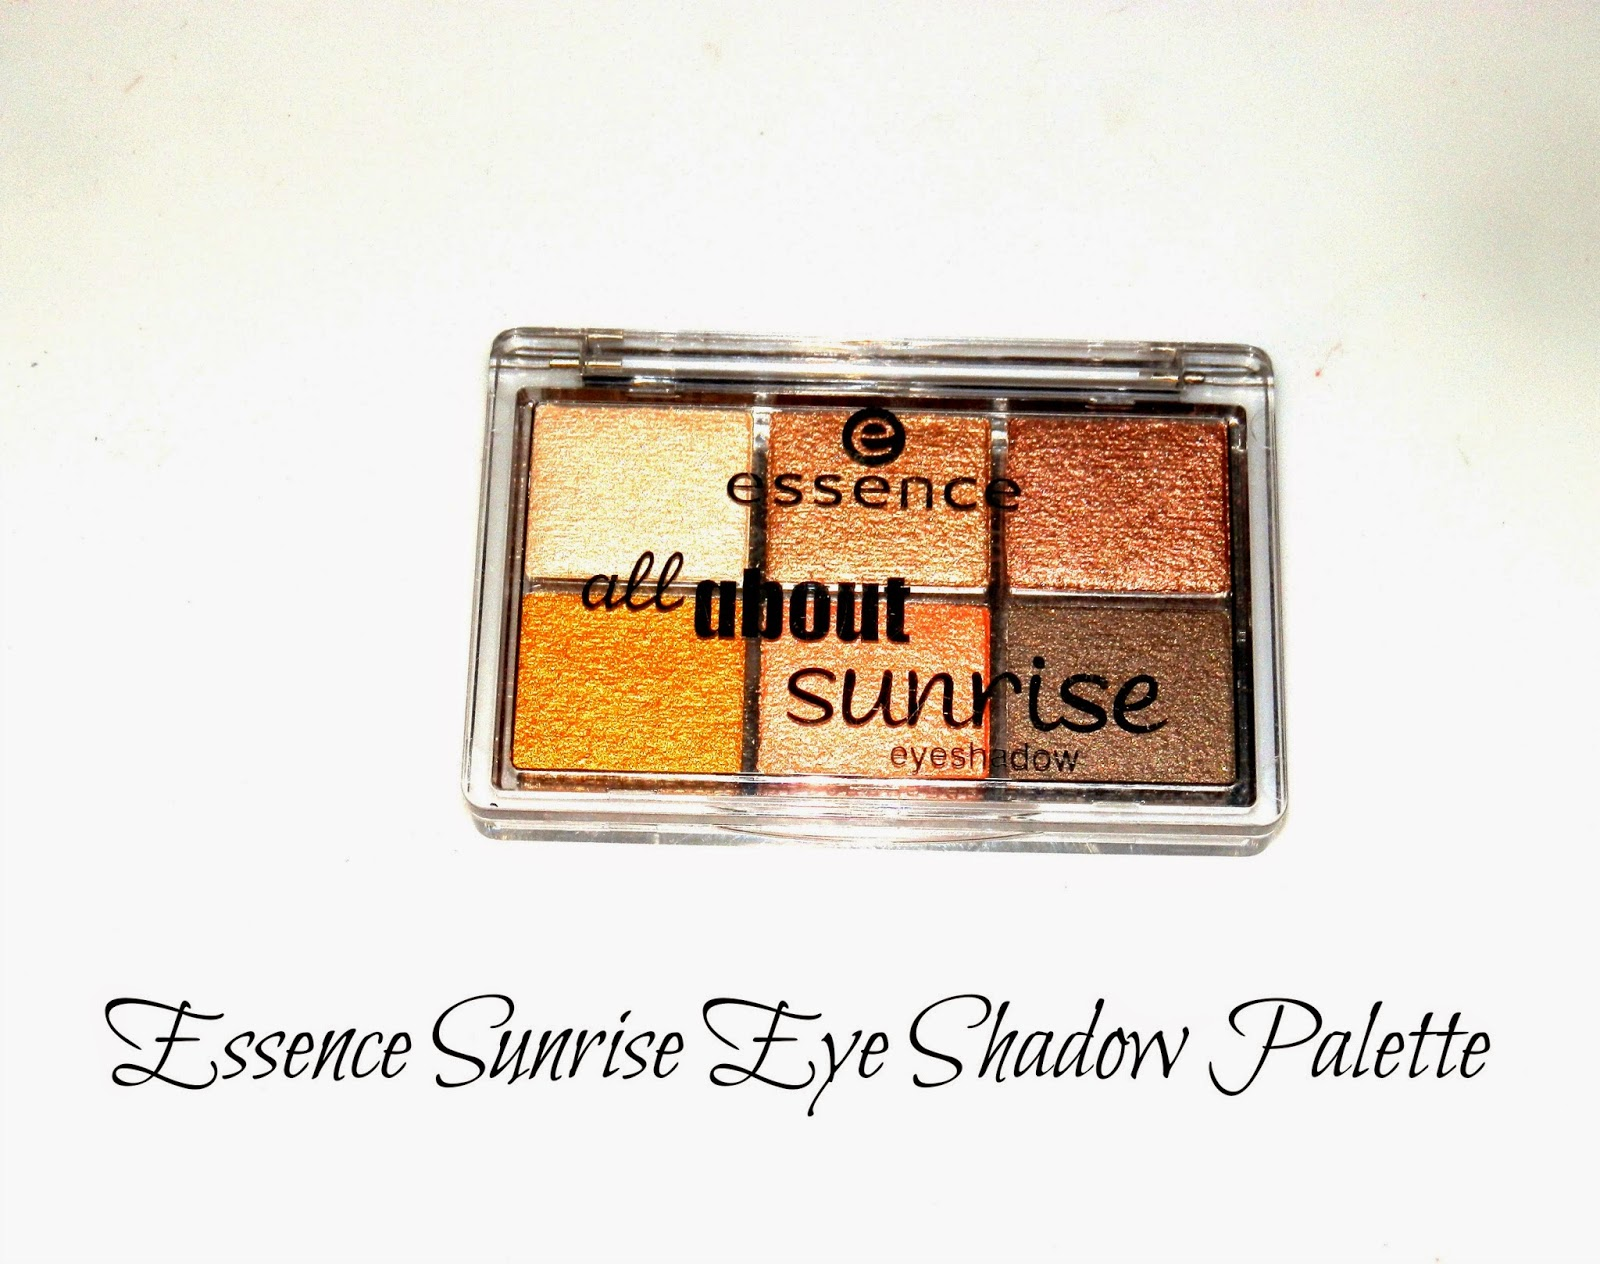 Essence Sunrise Eye Shadow Palette Swatches